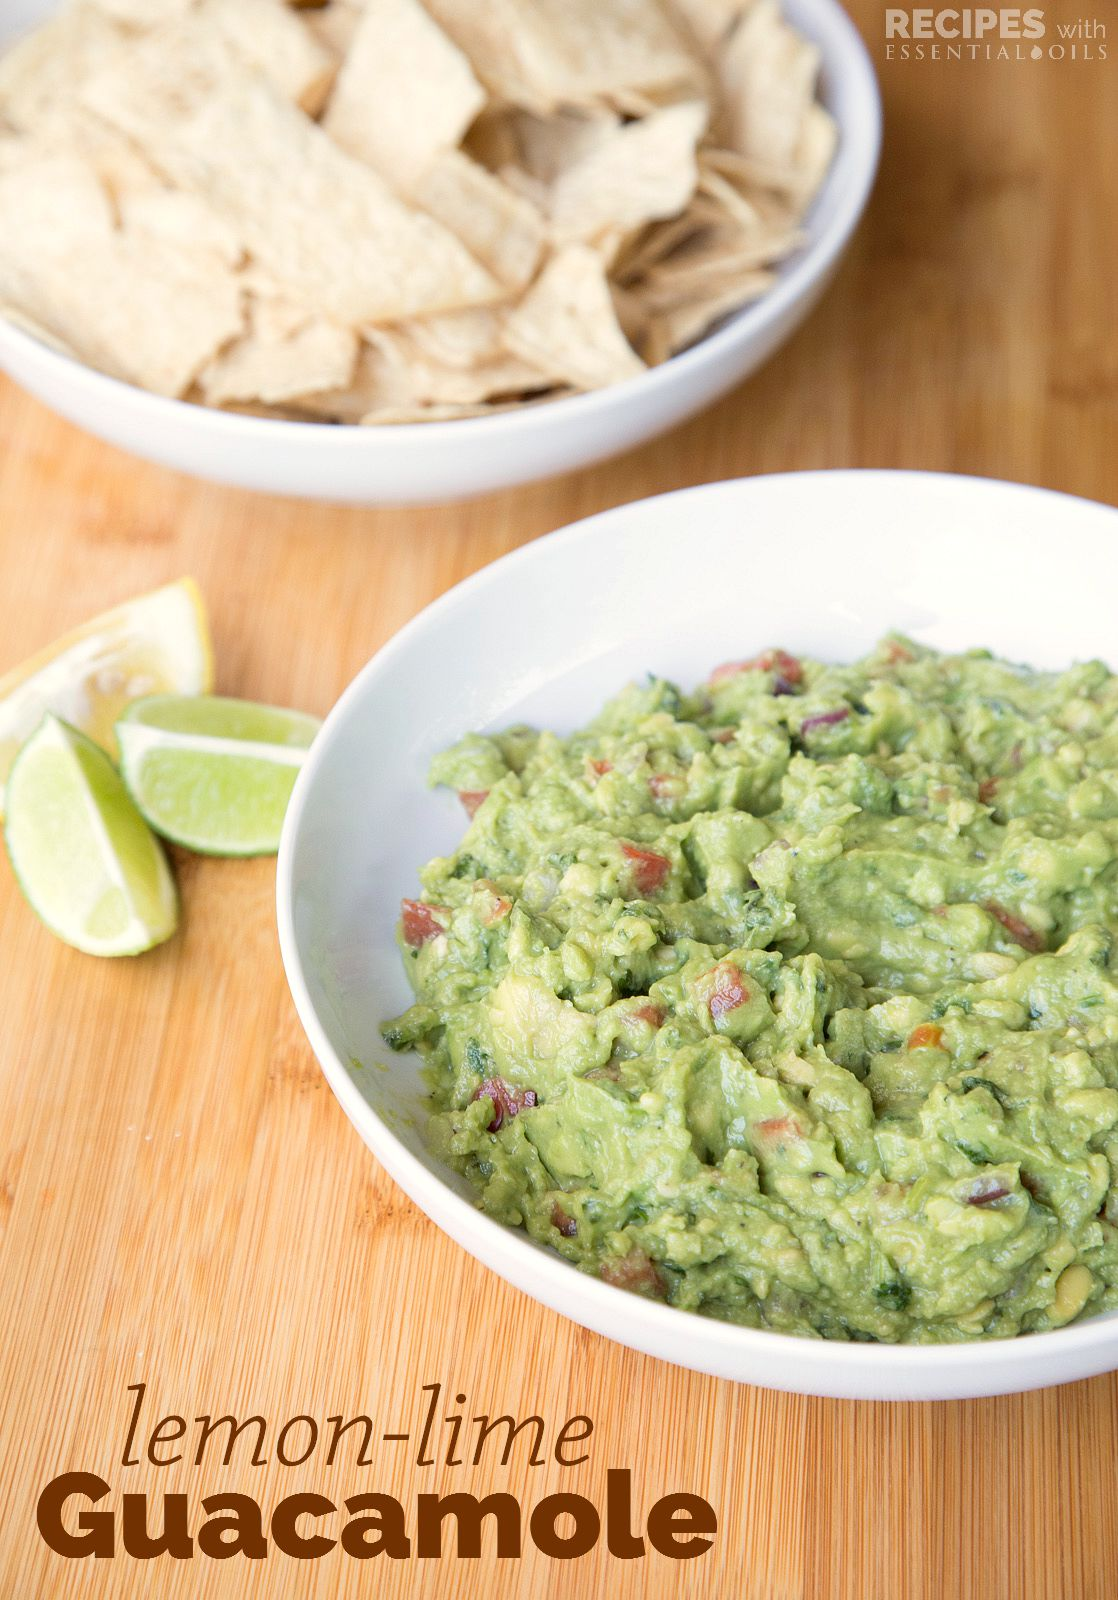 Homemade lemon lime guacamole recipes with essential oils homemade lemon lime guacamole from recipeswithessentialoils forumfinder Image collections